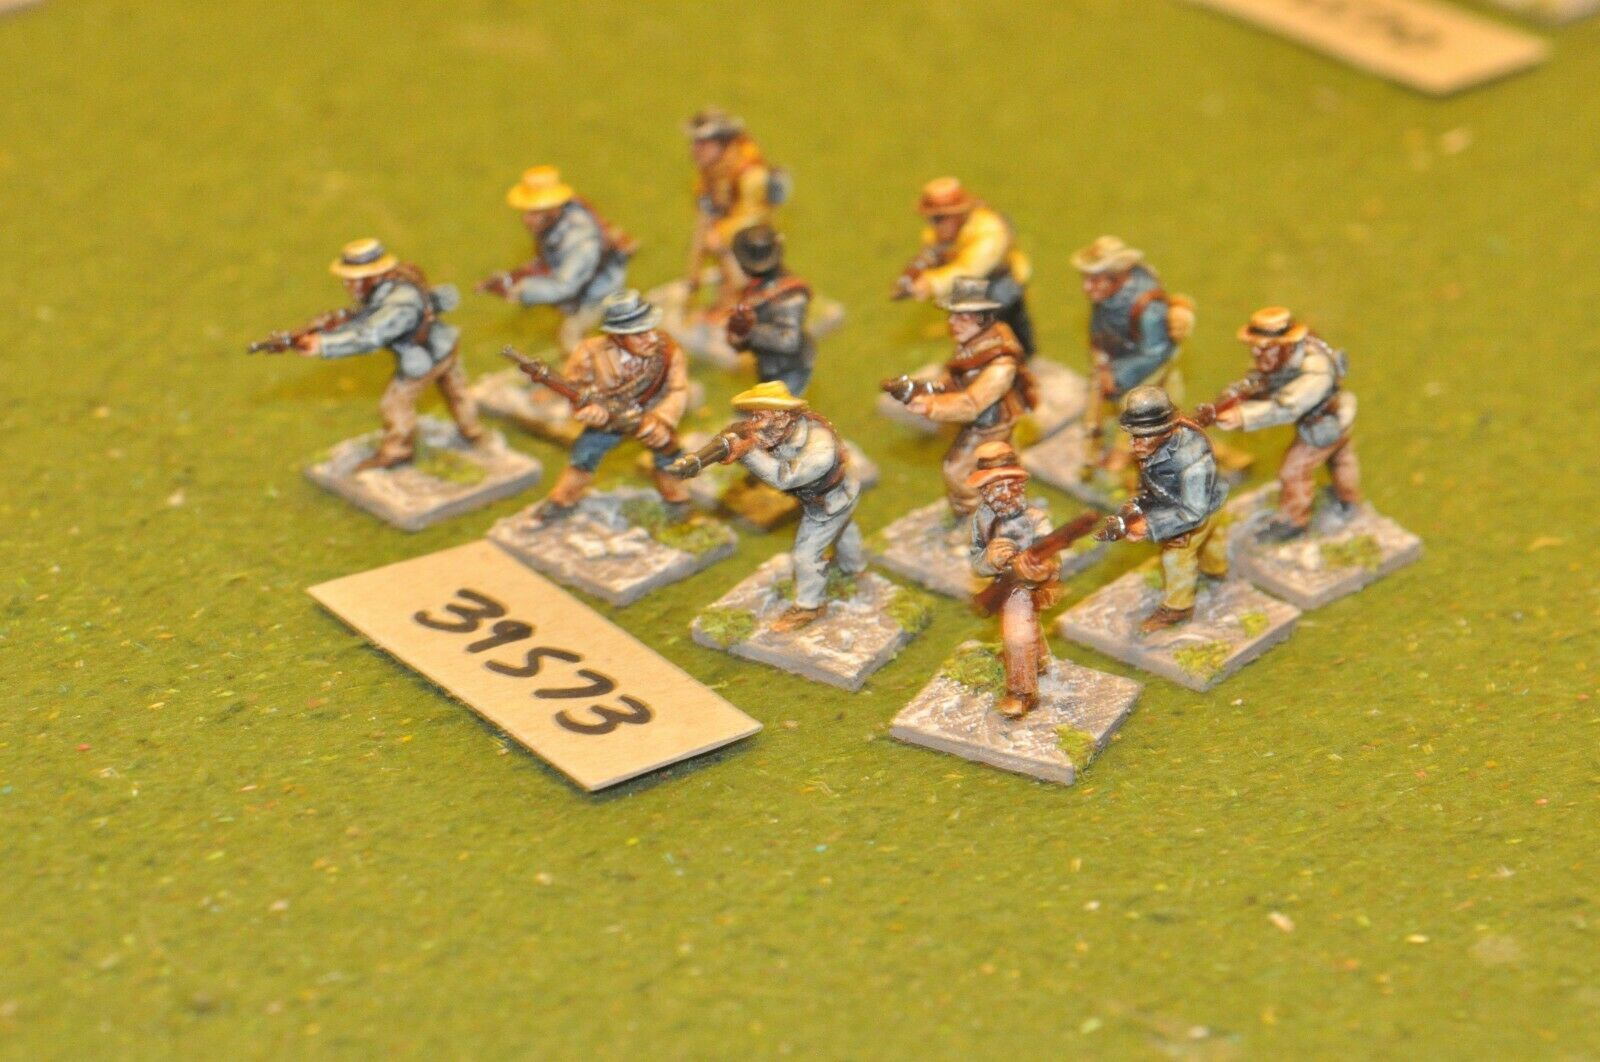 25mm coloniale   boer - smontato 12 cifra - inf (39573)